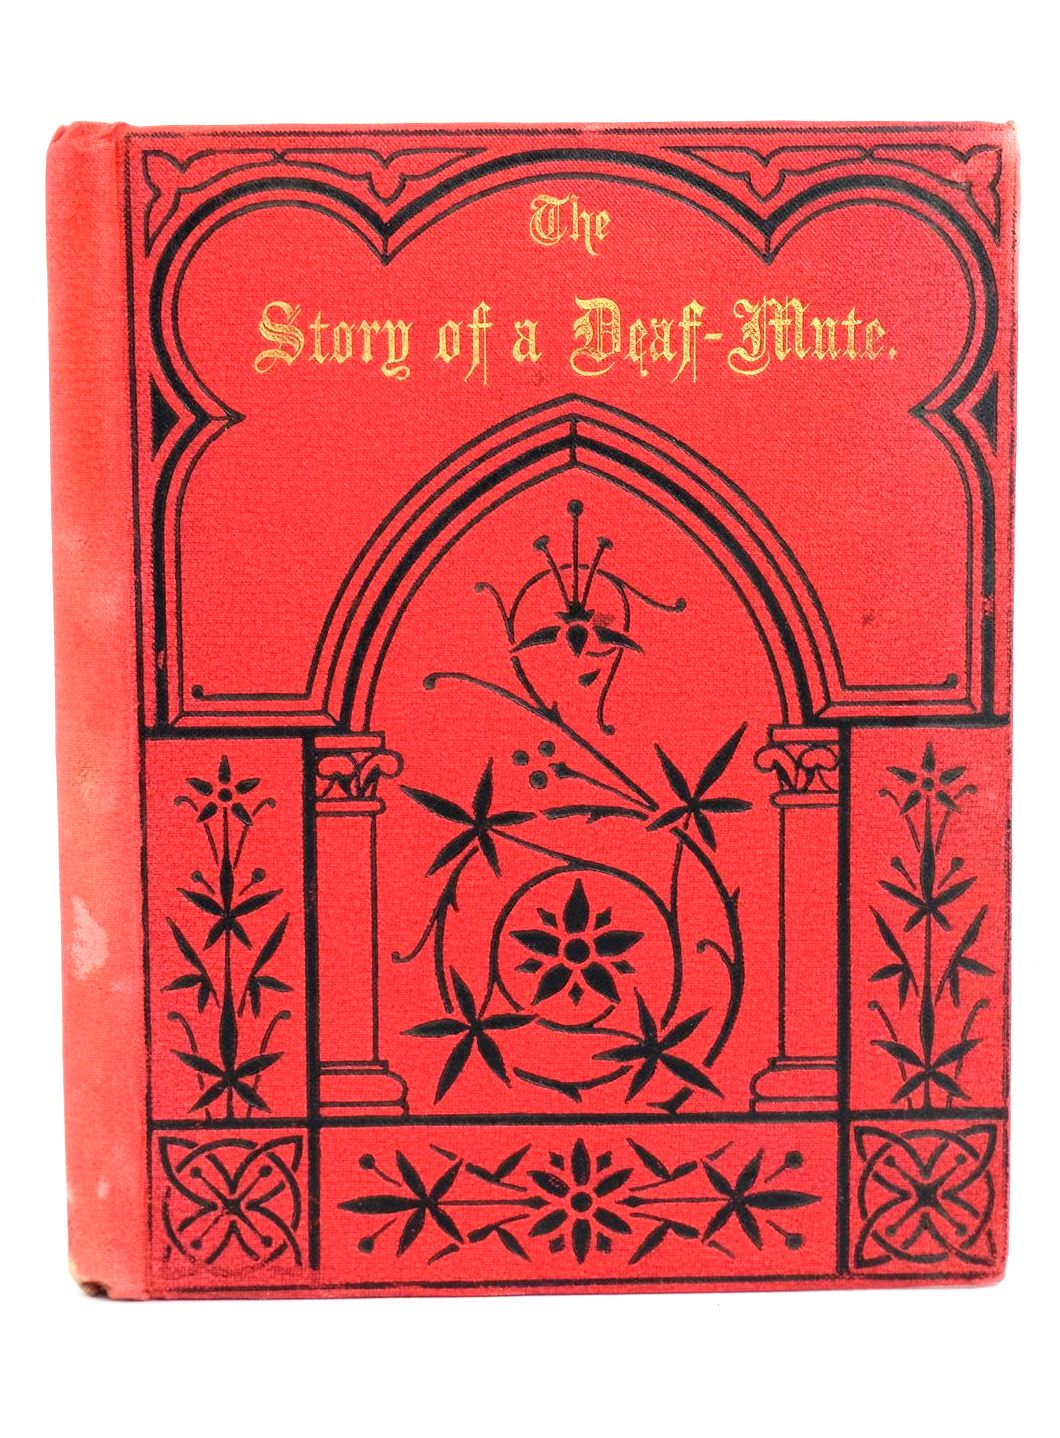 Photo of THE STORY OF A DEAF-MUTE published by W.H. Broom And Rouse (STOCK CODE: 1318791)  for sale by Stella & Rose's Books